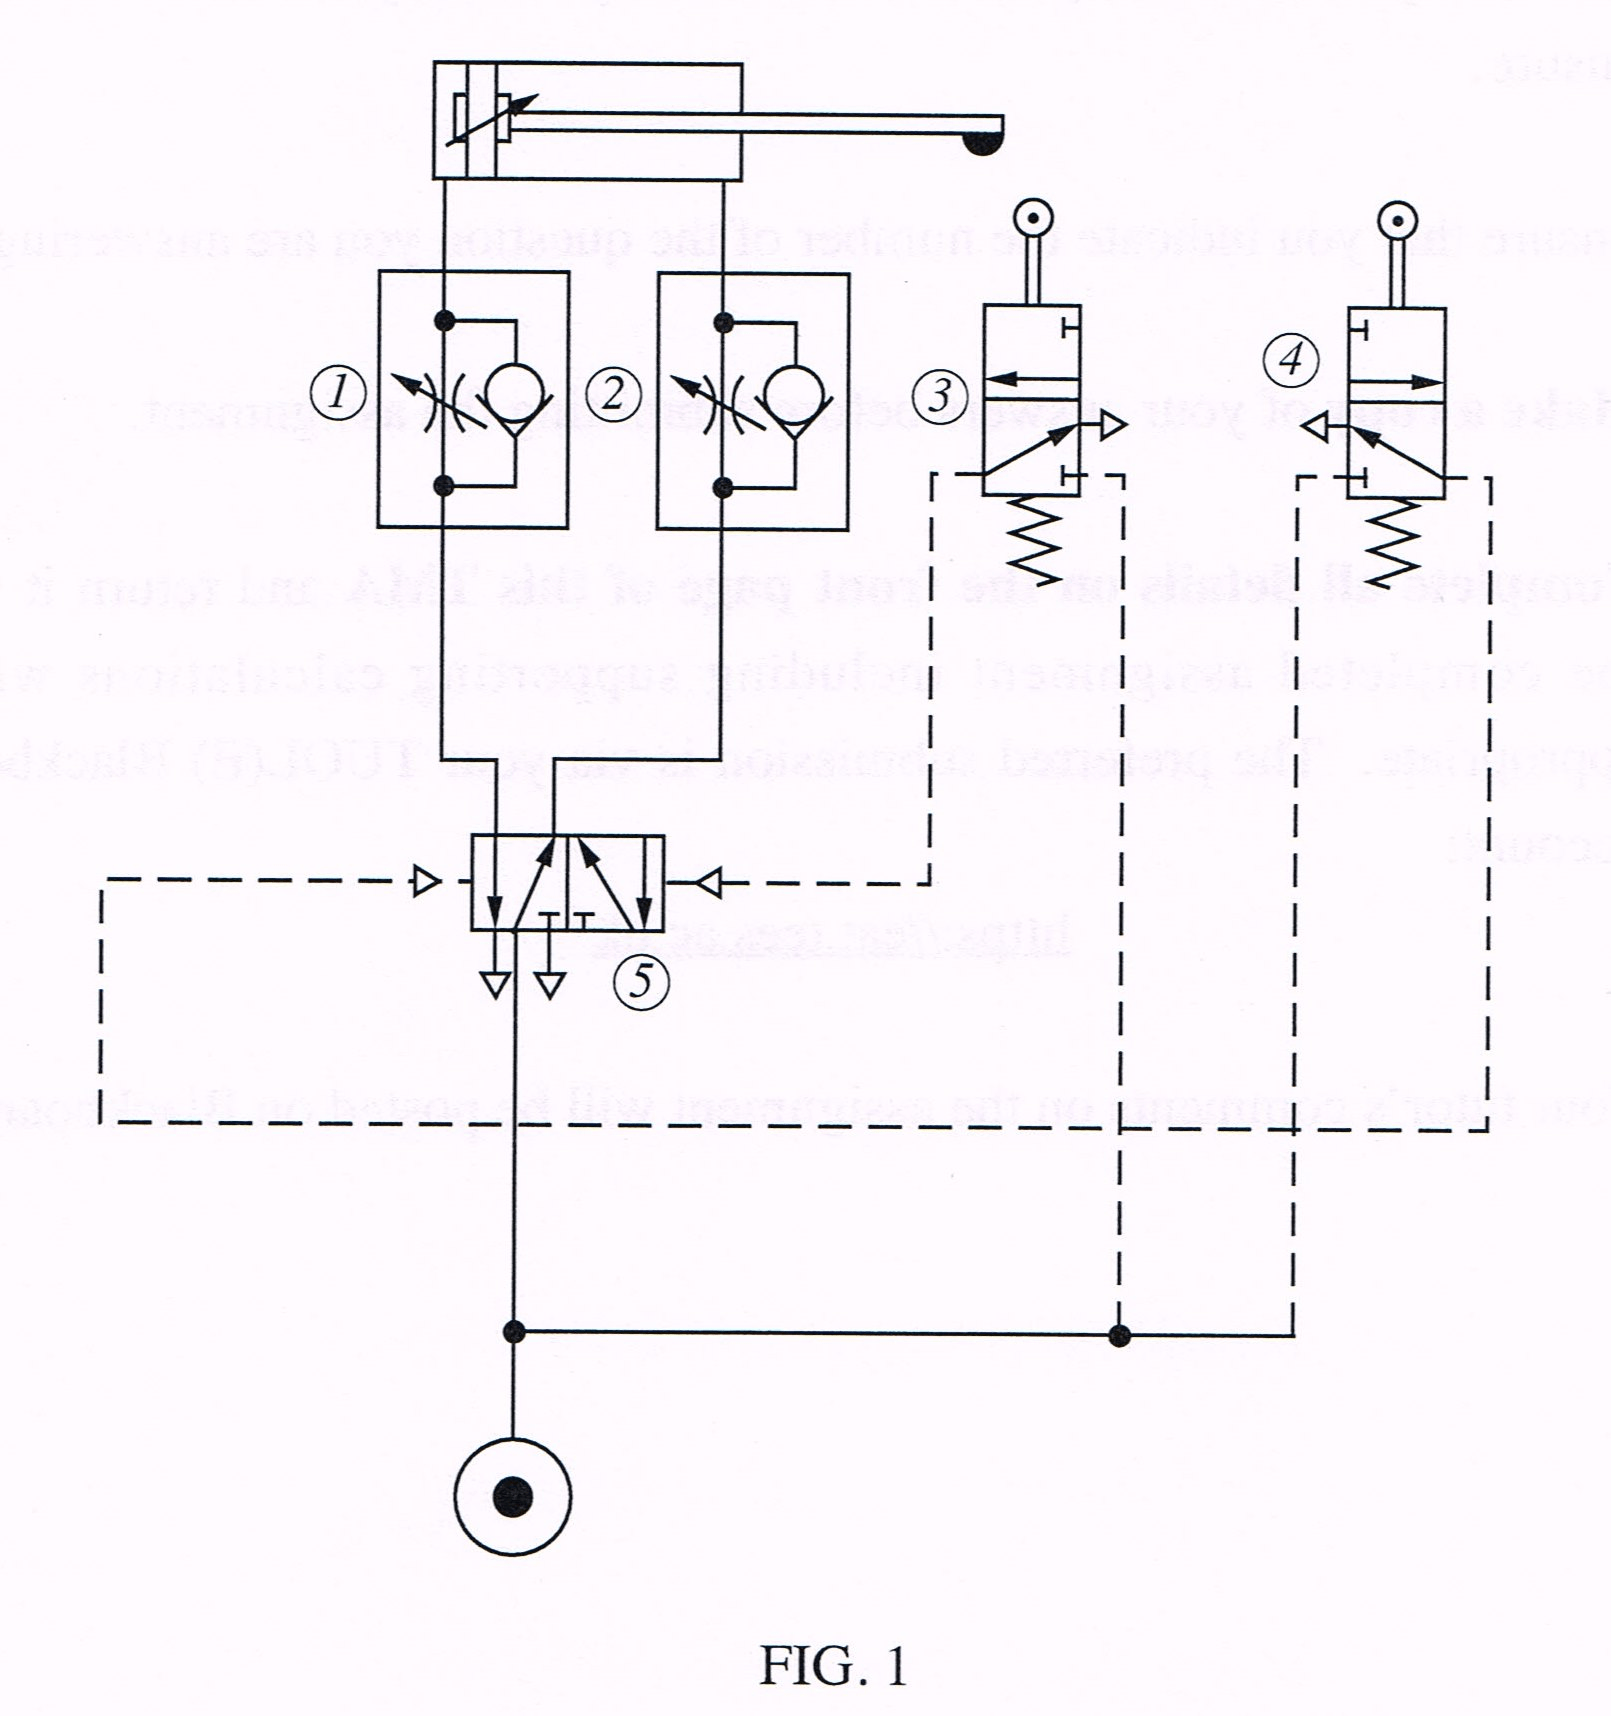 Solved: Fig 1 Shows A Pneumatic Circuit Diagram Used For A